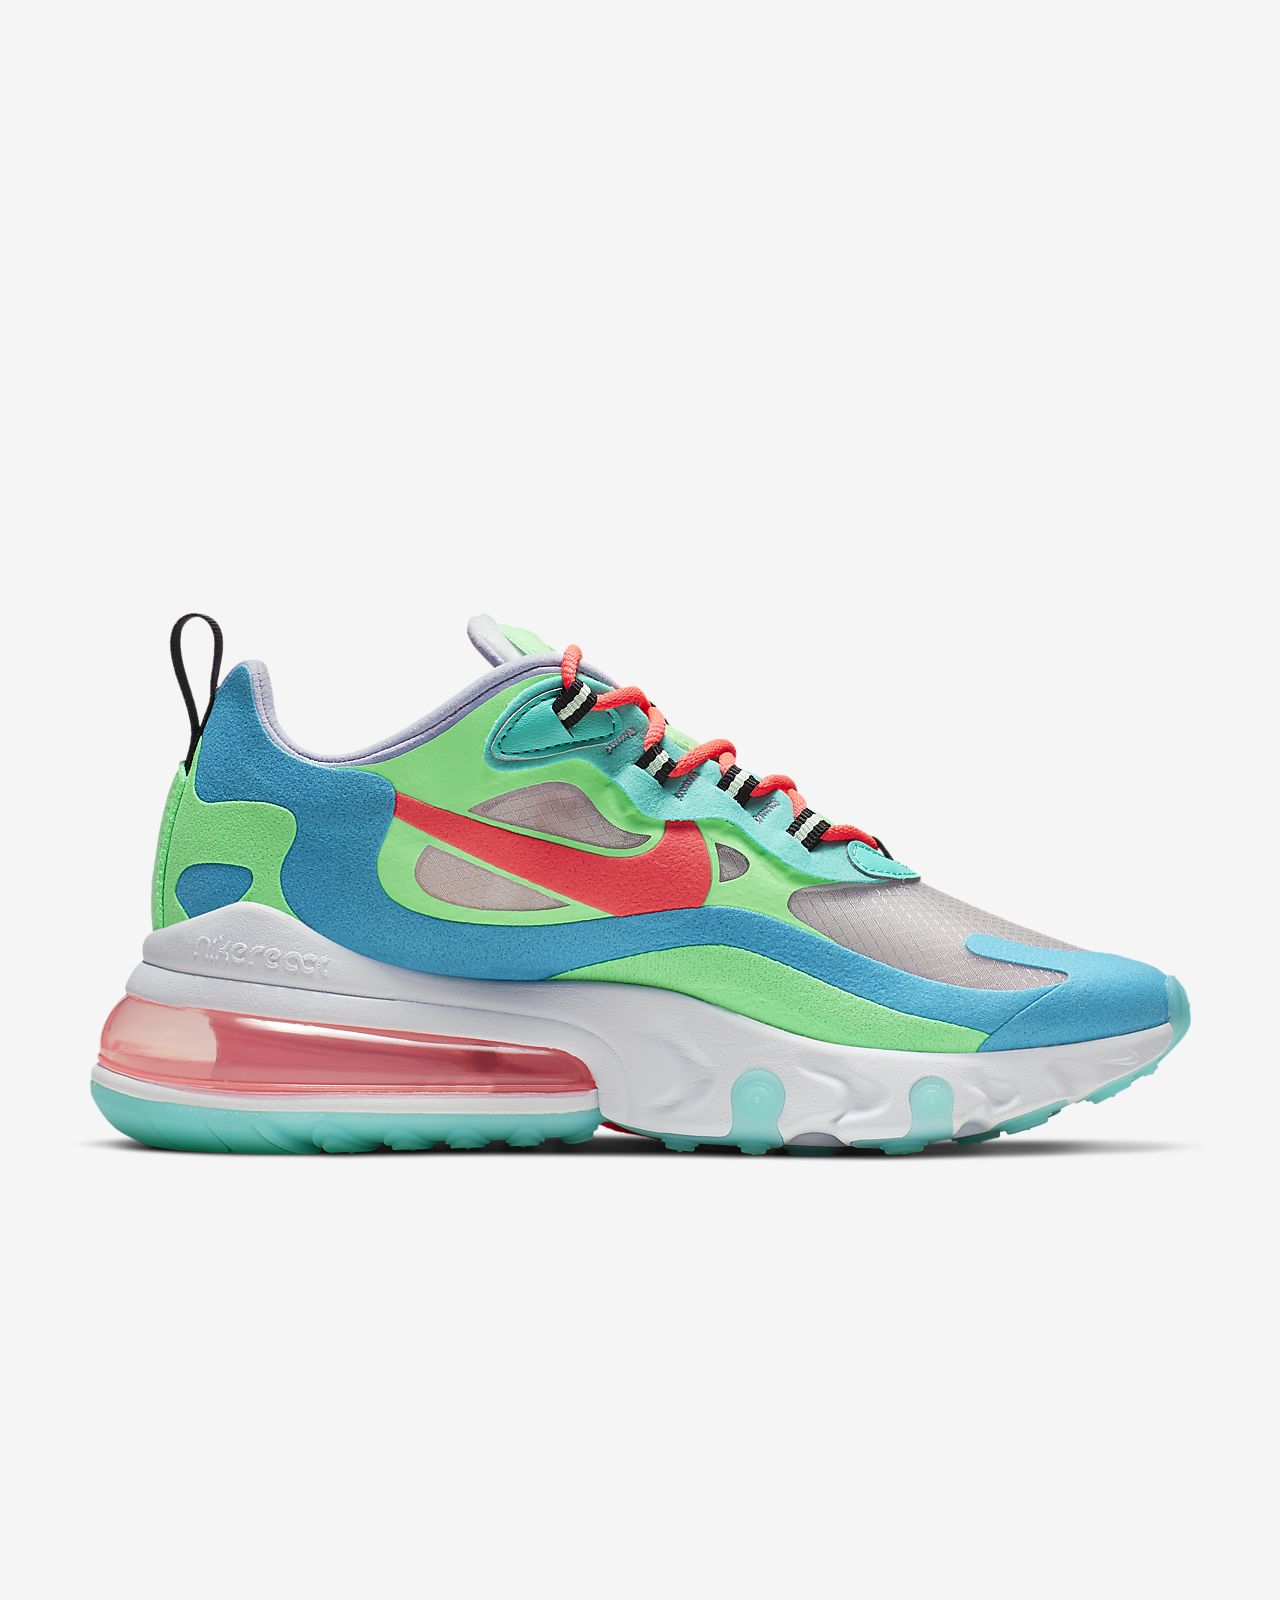 air max 270 chaussures de running compétition femme homme sneakers